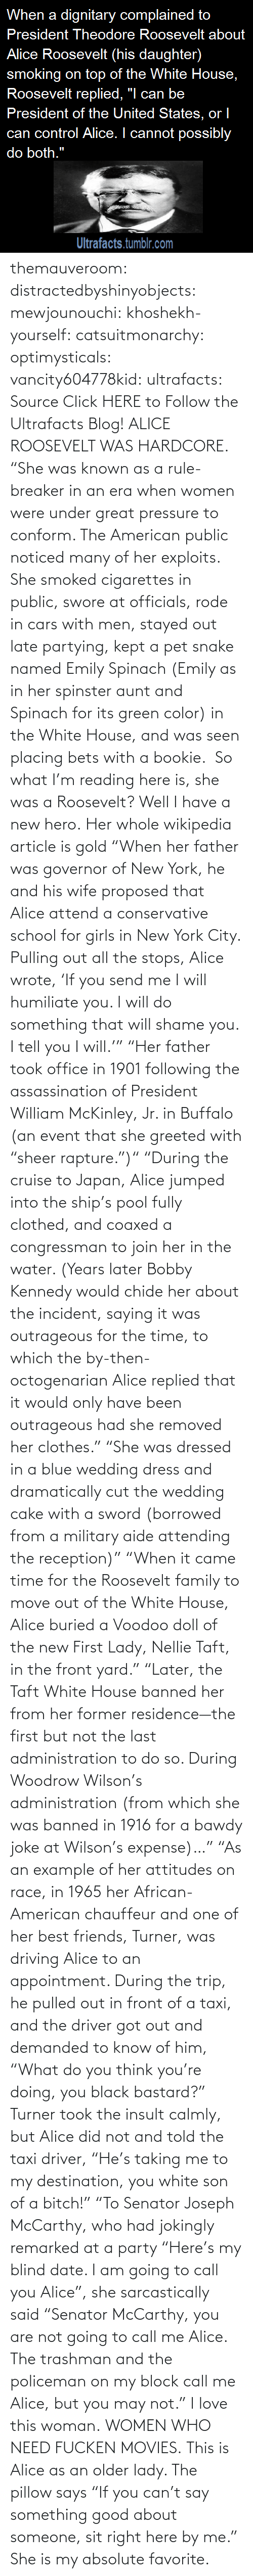 "lady: themauveroom: distractedbyshinyobjects:  mewjounouchi:  khoshekh-yourself:  catsuitmonarchy:  optimysticals:  vancity604778kid:  ultrafacts:     Source Click HERE to Follow the Ultrafacts Blog!     ALICE ROOSEVELT WAS HARDCORE. ""She was known as a rule-breaker in an era when women were under great pressure to conform. The American public noticed many of her exploits. She smoked cigarettes in public, swore at officials, rode in cars with men, stayed out late partying, kept a pet snake named Emily Spinach (Emily as in her spinster aunt and Spinach for its green color) in the White House, and was seen placing bets with a bookie.    So what I'm reading here is, she was a Roosevelt?  Well I have a new hero.  Her whole wikipedia article is gold ""When her father was governor of New York, he and his wife proposed that Alice attend a conservative school for girls in New York City. Pulling out all the stops, Alice wrote, 'If you send me I will humiliate you. I will do something that will shame you. I tell you I will.'"" ""Her father took office in 1901 following the assassination of President William McKinley, Jr. in Buffalo (an event that she greeted with ""sheer rapture."")"" ""During the cruise to Japan, Alice jumped into the ship's pool fully clothed, and coaxed a congressman to join her in the water. (Years later Bobby Kennedy would chide her about the incident, saying it was outrageous for the time, to which the by-then-octogenarian Alice replied that it would only have been outrageous had she removed her clothes."" ""She was dressed in a blue wedding dress and dramatically cut the wedding cake with a sword (borrowed from a military aide attending the reception)"" ""When it came time for the Roosevelt family to move out of the White House, Alice buried a Voodoo doll of the new First Lady, Nellie Taft, in the front yard."" ""Later, the Taft White House banned her from her former residence—the first but not the last administration to do so. During Woodrow Wilson's administration (from which she was banned in 1916 for a bawdy joke at Wilson's expense)…"" ""As an example of her attitudes on race, in 1965 her African-American chauffeur and one of her best friends, Turner, was driving Alice to an appointment. During the trip, he pulled out in front of a taxi, and the driver got out and demanded to know of him, ""What do you think you're doing, you black bastard?"" Turner took the insult calmly, but Alice did not and told the taxi driver, ""He's taking me to my destination, you white son of a bitch!"" ""To Senator Joseph McCarthy, who had jokingly remarked at a party ""Here's my blind date. I am going to call you Alice"", she sarcastically said ""Senator McCarthy, you are not going to call me Alice. The trashman and the policeman on my block call me Alice, but you may not.""  I love this woman.  WOMEN WHO NEED FUCKEN MOVIES.   This is Alice as an older lady. The pillow says ""If you can't say something good about someone, sit right here by me.""  She is my absolute favorite."